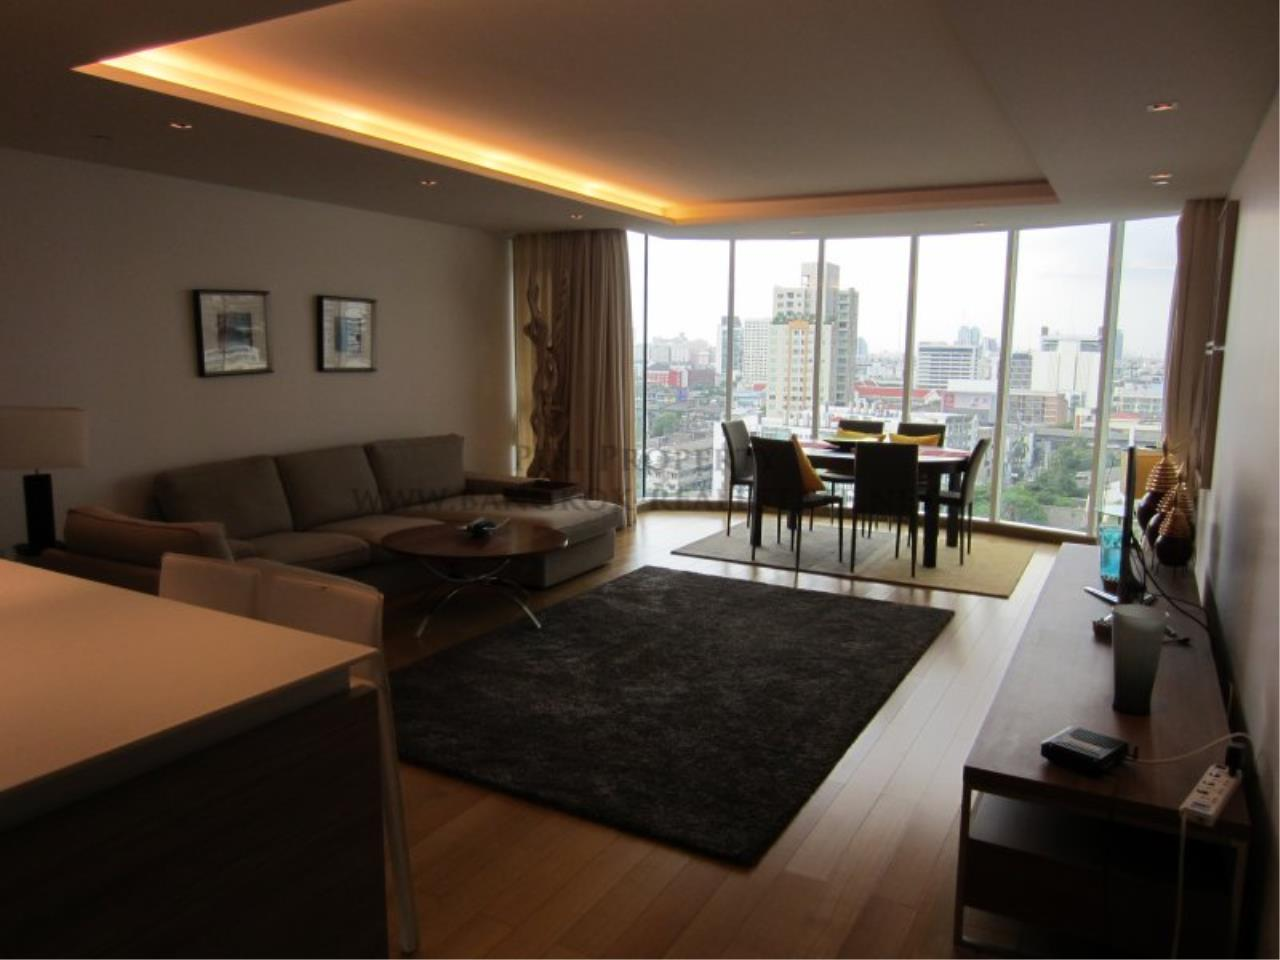 Piri Property Agency's Spacious 2 Bedroom Condo or Rent in Ari - Le Monaco 5